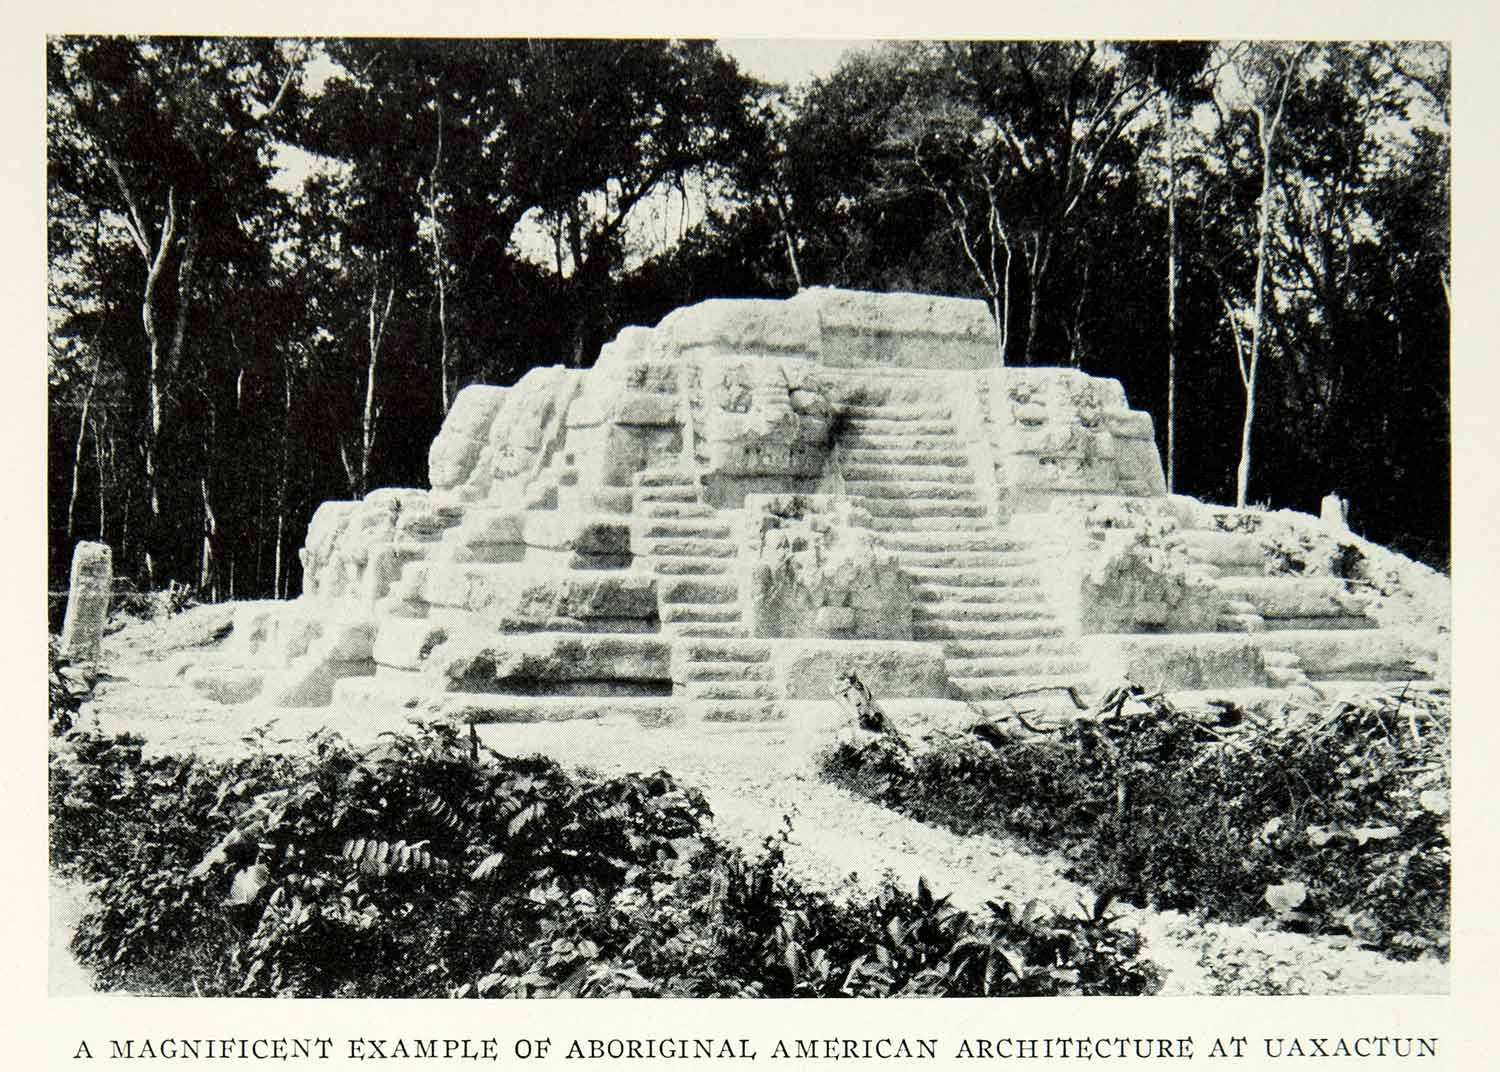 1931 Print Pyramid E-VIII Uaxactun Guatemala Archaeology Excavation Ruins NGM8 - Period Paper